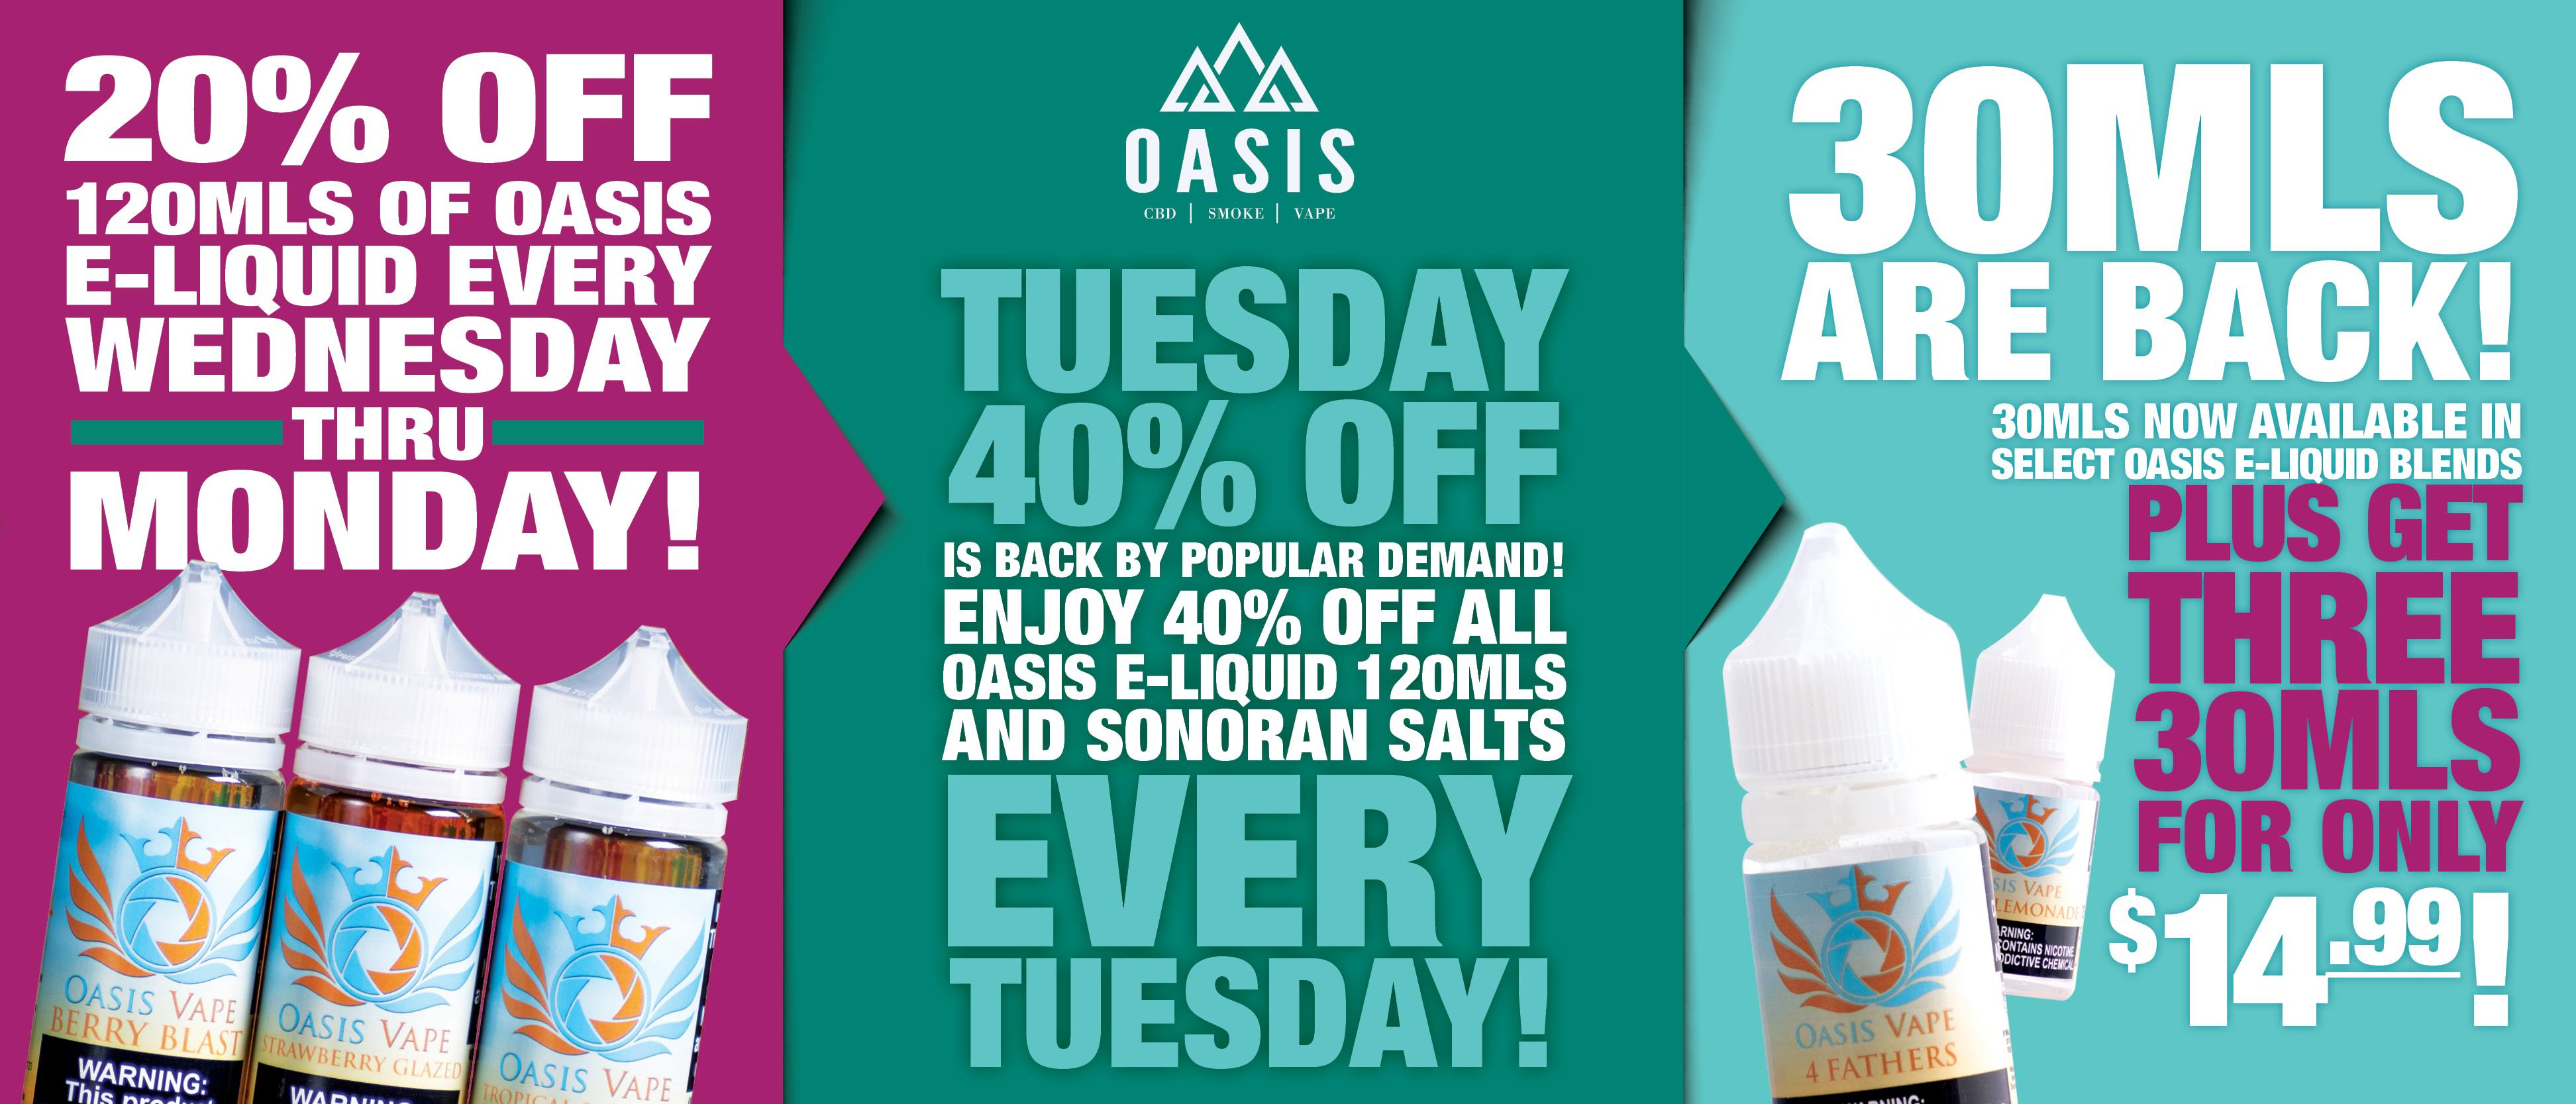 20% off 120mls of Oasis e-liquid every Wednesday through Monday. Tuesday 40% off is back! Enjoy 40% off all Oasis 120mls and Sonoran Salts every Tuesday.